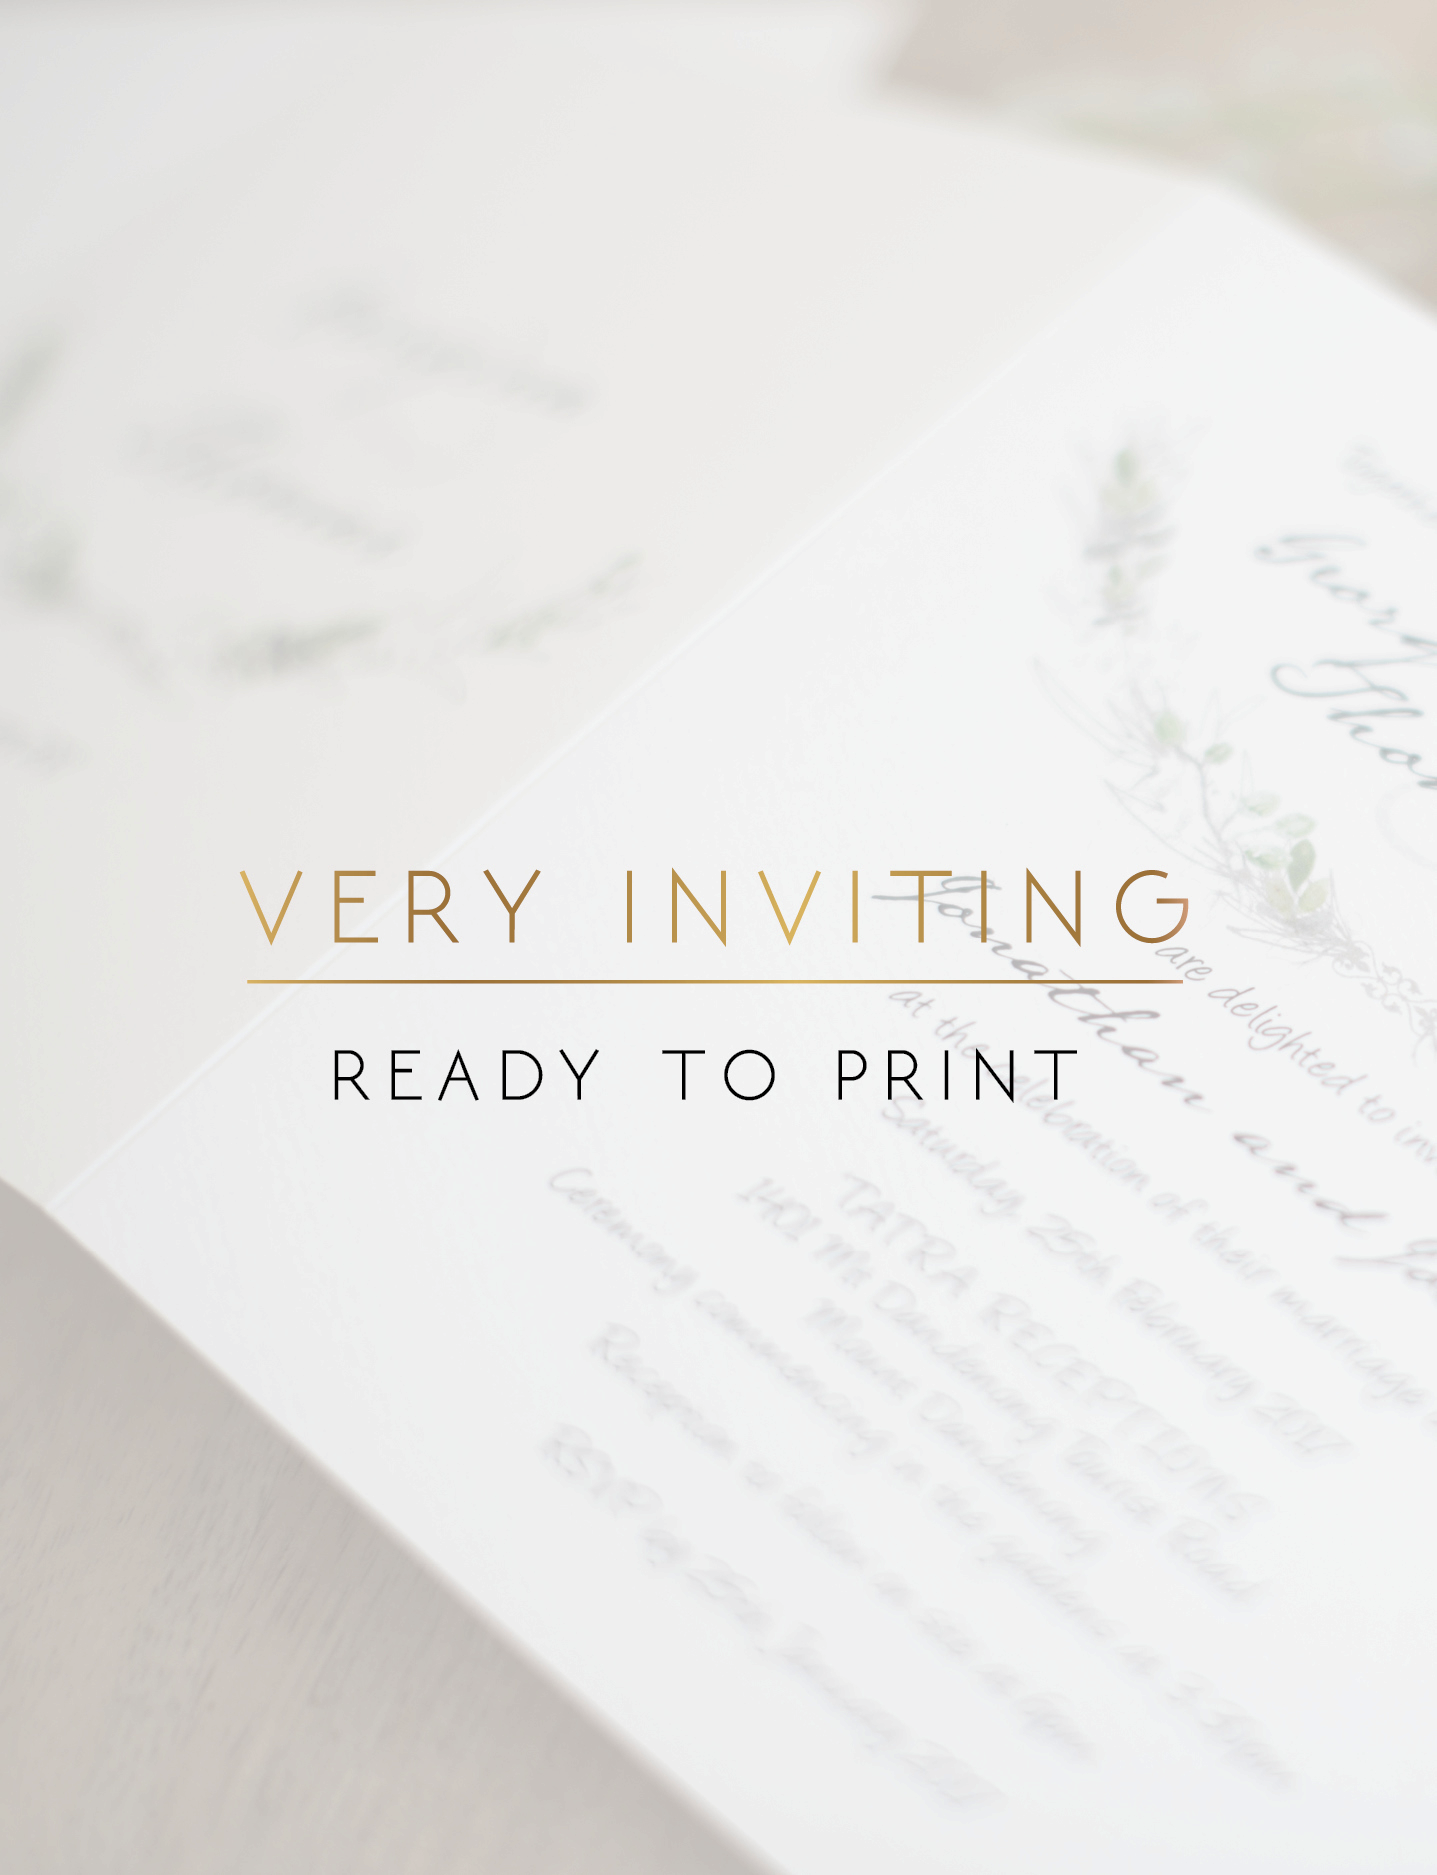 Very Inviting Ready To Print Invitations Melbourne - Very Inviting Invitations Melbourne